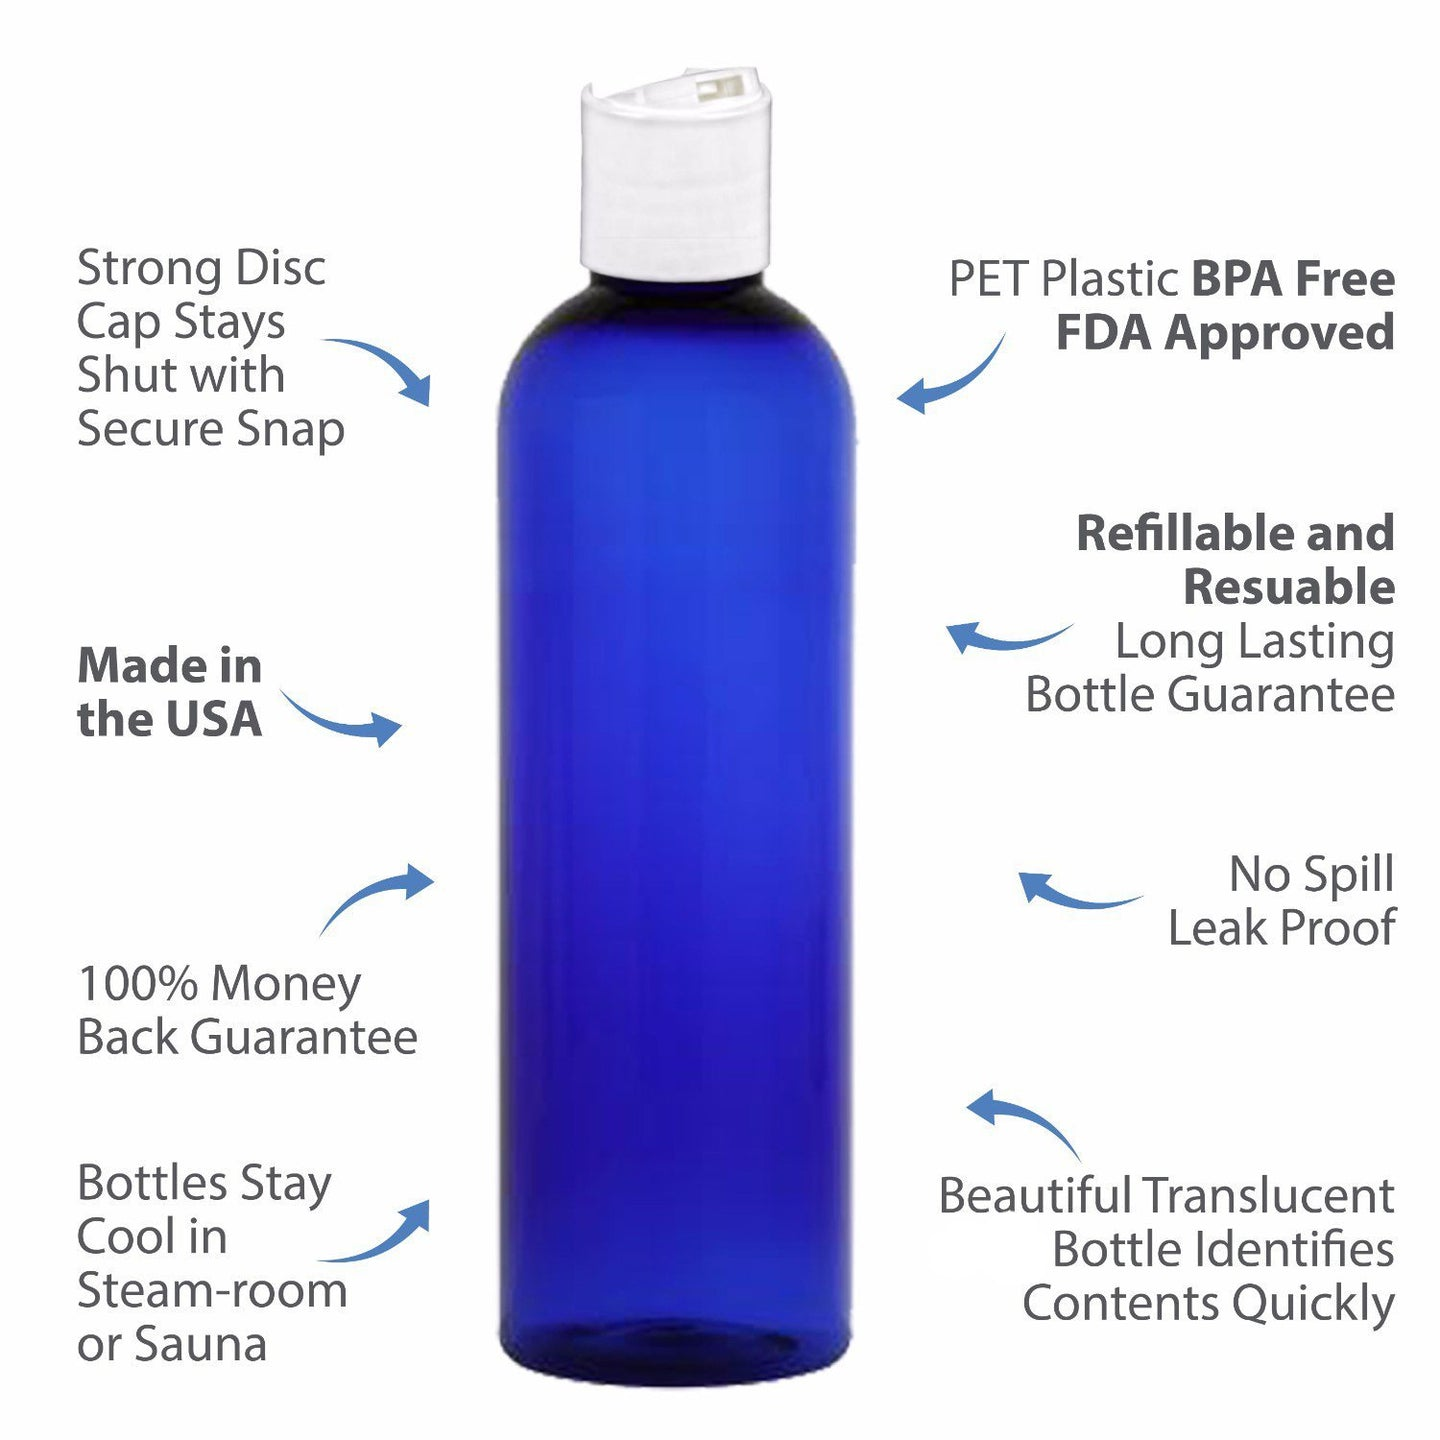 MoYo Natural Labs 4 oz Travel Bottles, Empty Travel Containers with Disc Caps, BPA Free PET Plastic Squeezable Toiletry/Cosmetic Bottle (Neck 20-410) (Pack of 4, Blue)